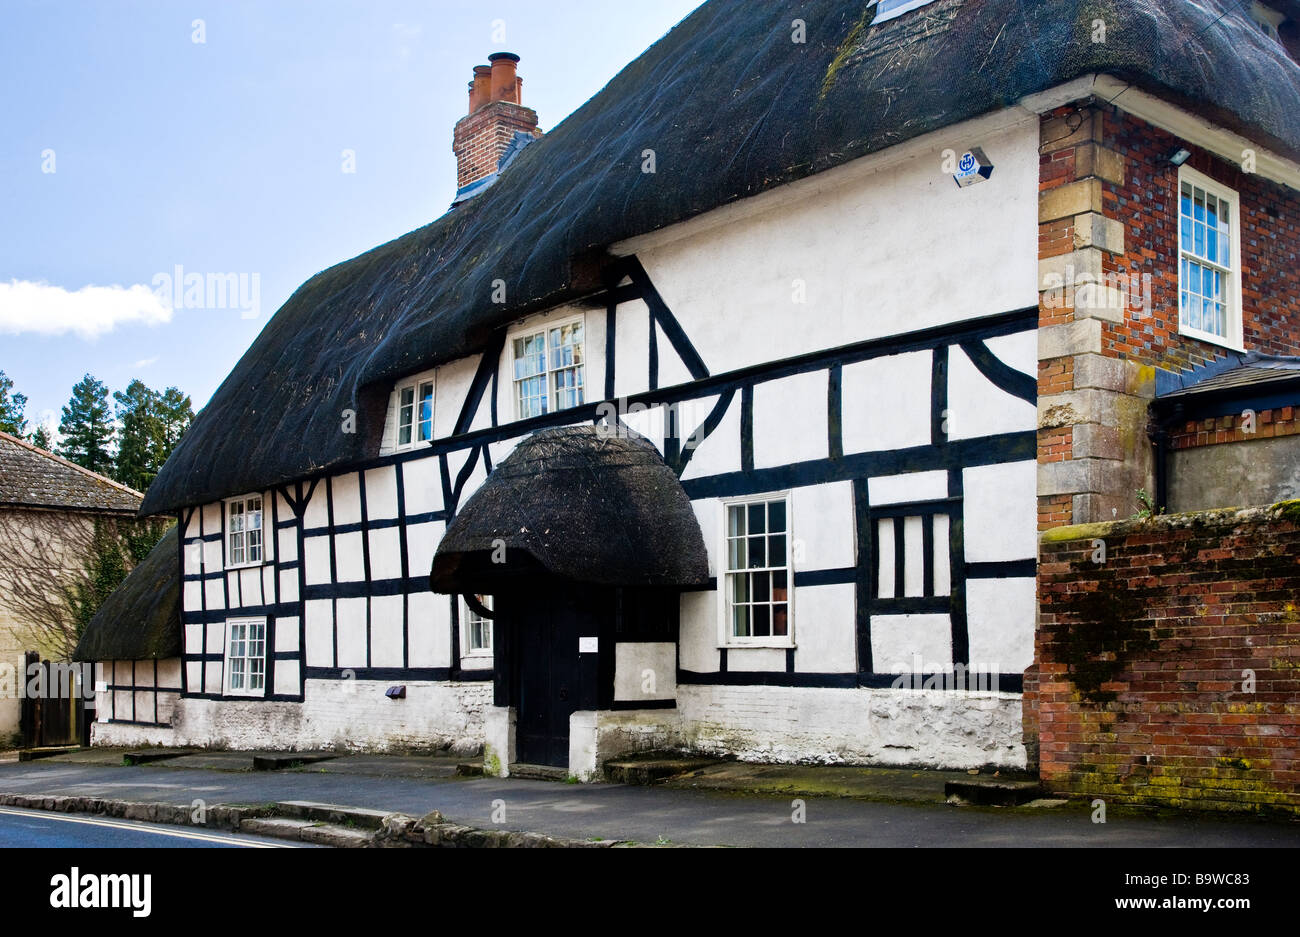 An old thatched timber framed Tudor cottage in the English village of Pewsey in Wiltshire England UK - Stock Image